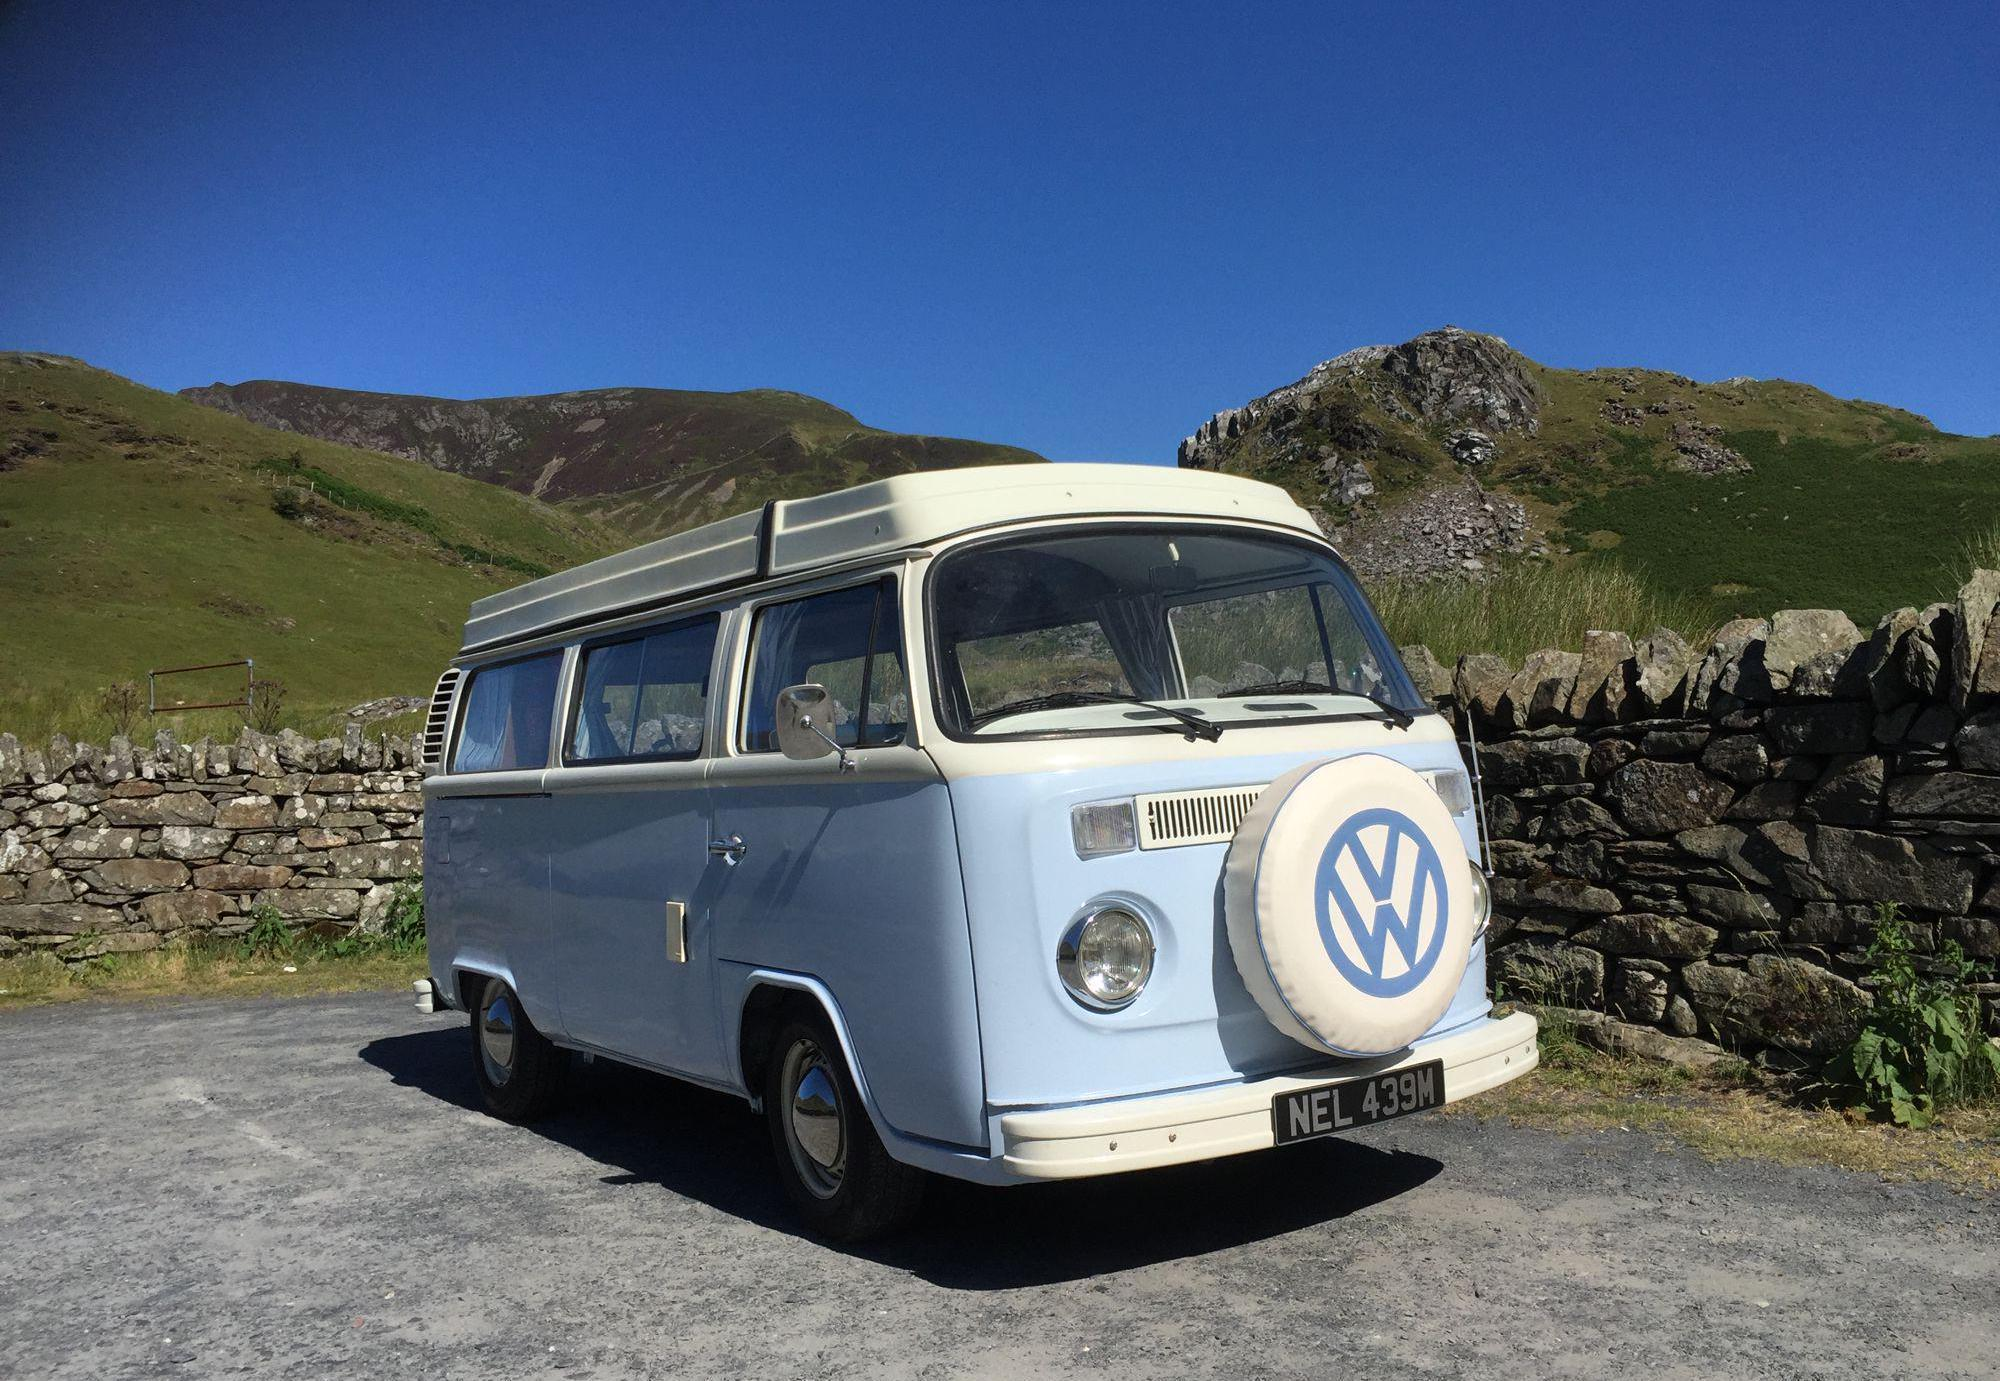 Nell Camper in Cornwall